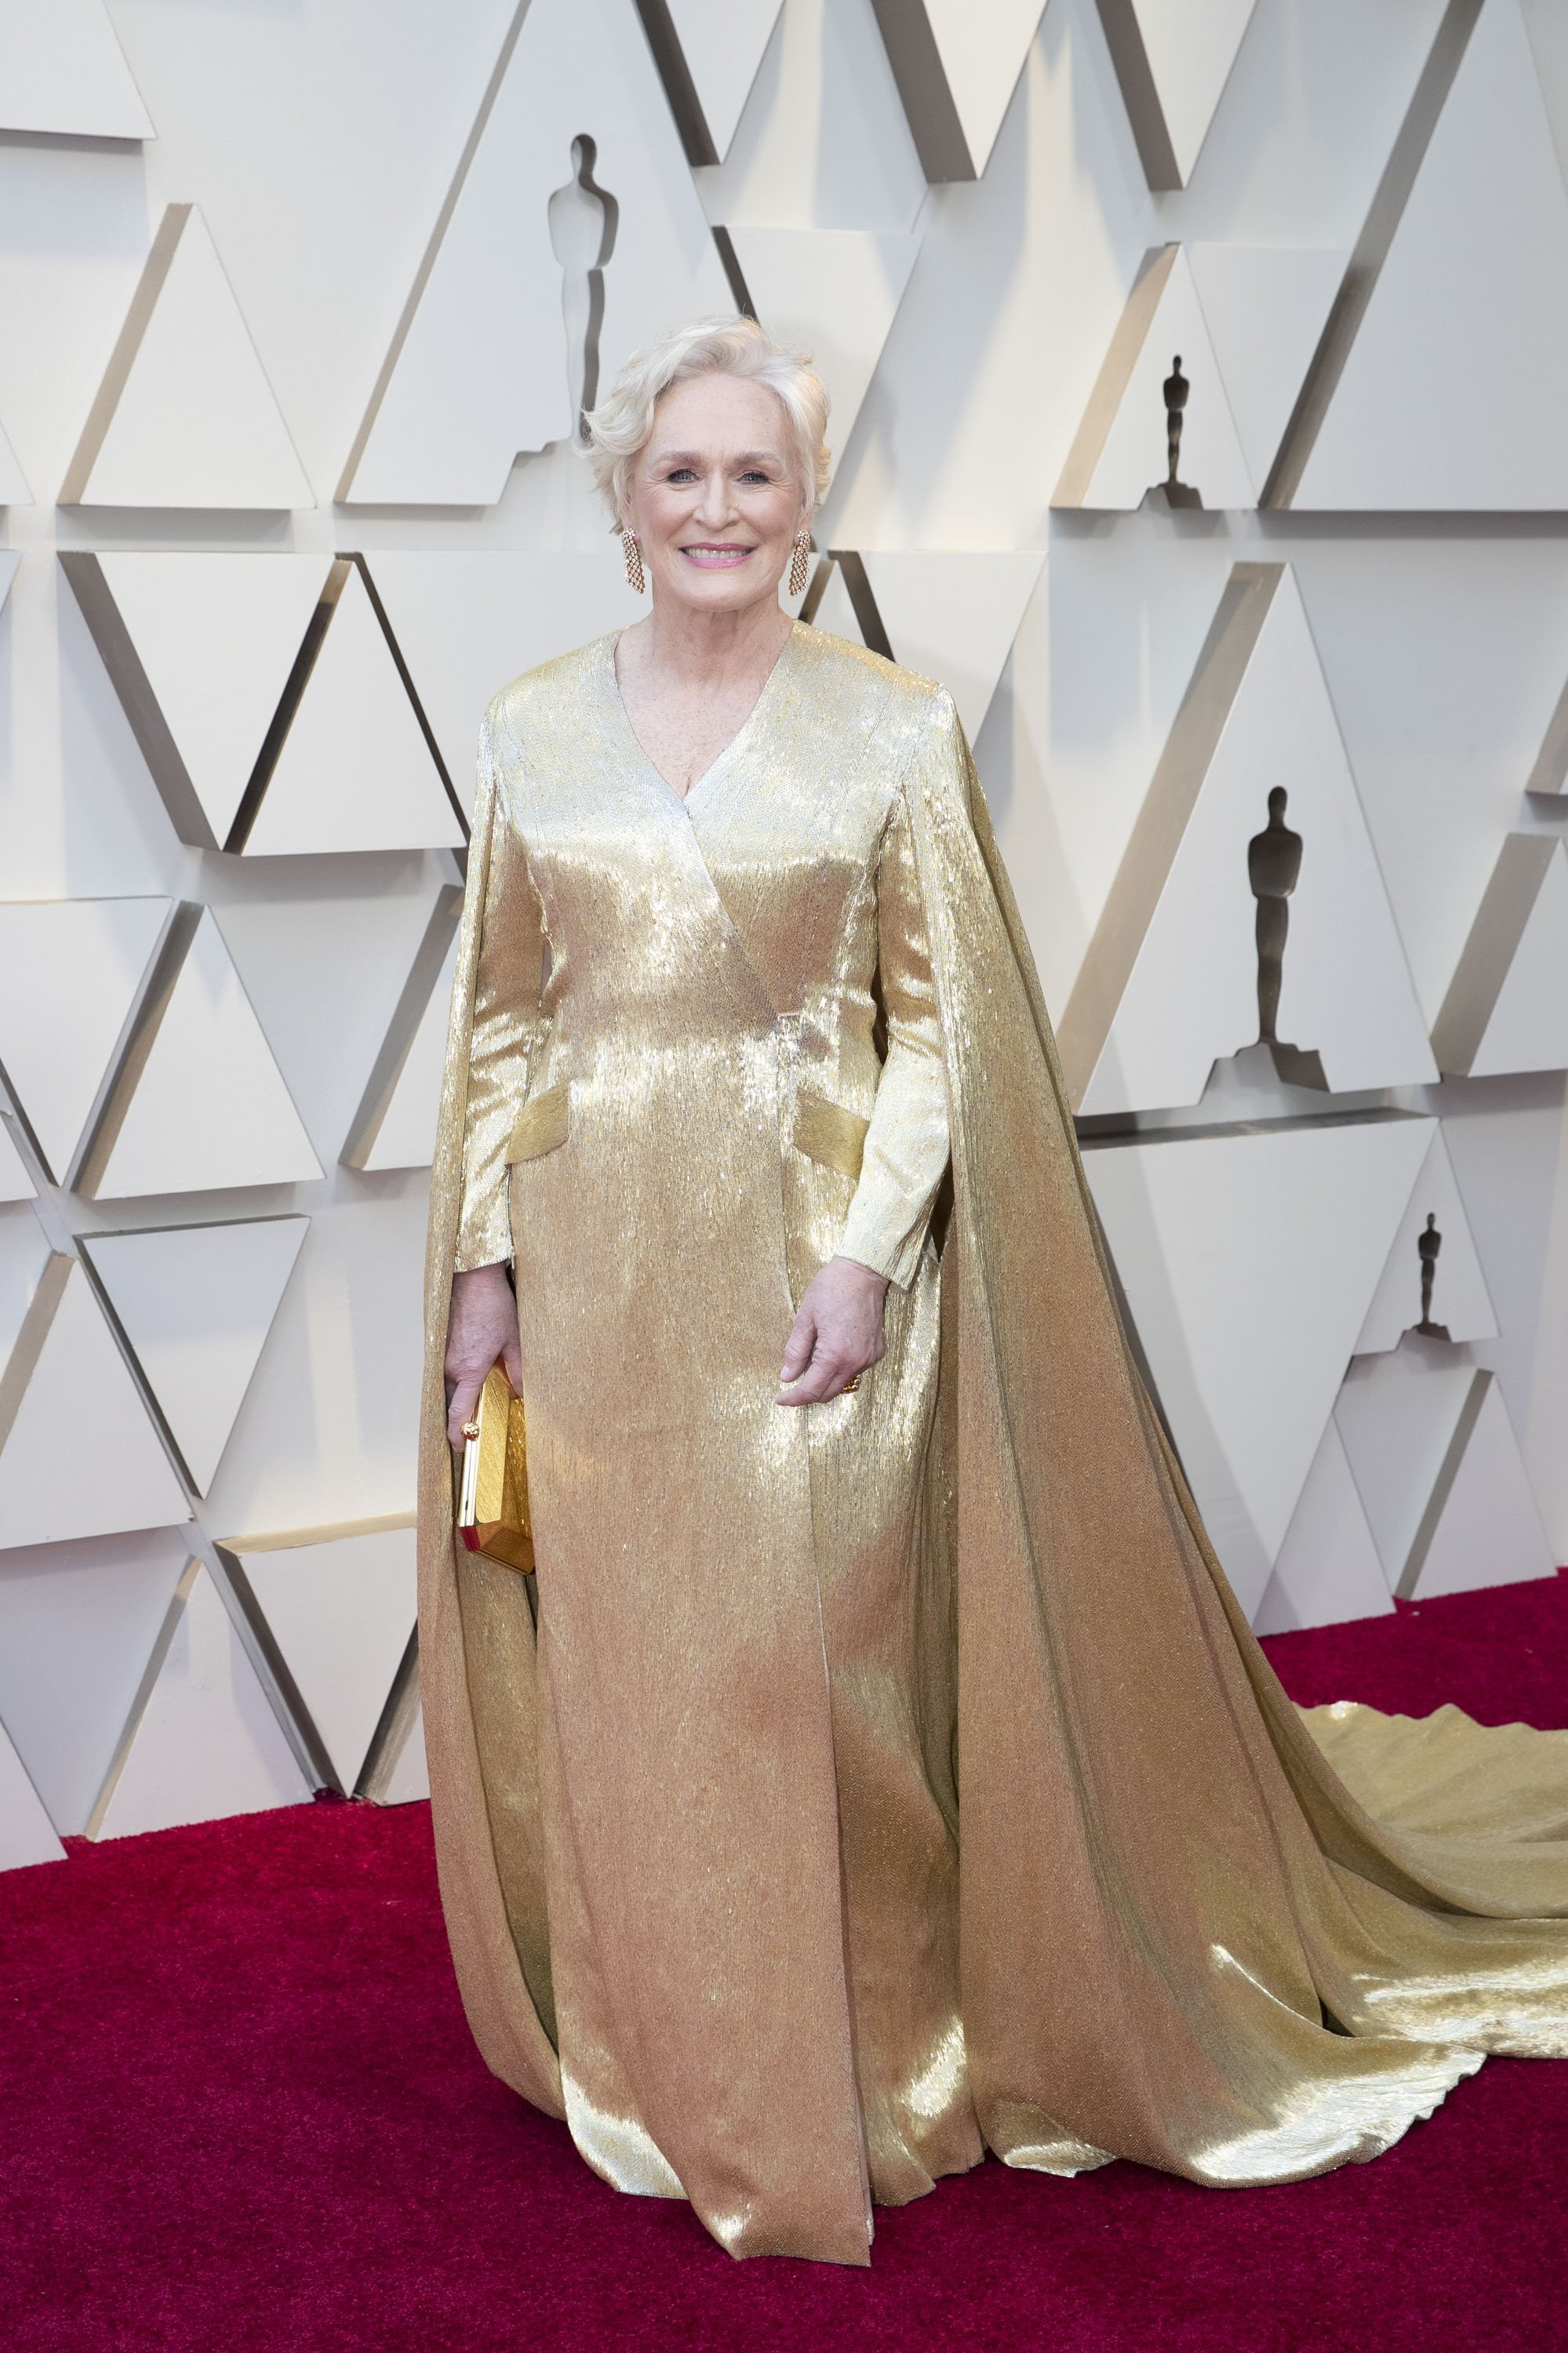 Glenn Close: Red Carpet from the The 91st Oscar broadcast on Sunday, Feb. 24, 2019, at the Dolby Theatre.